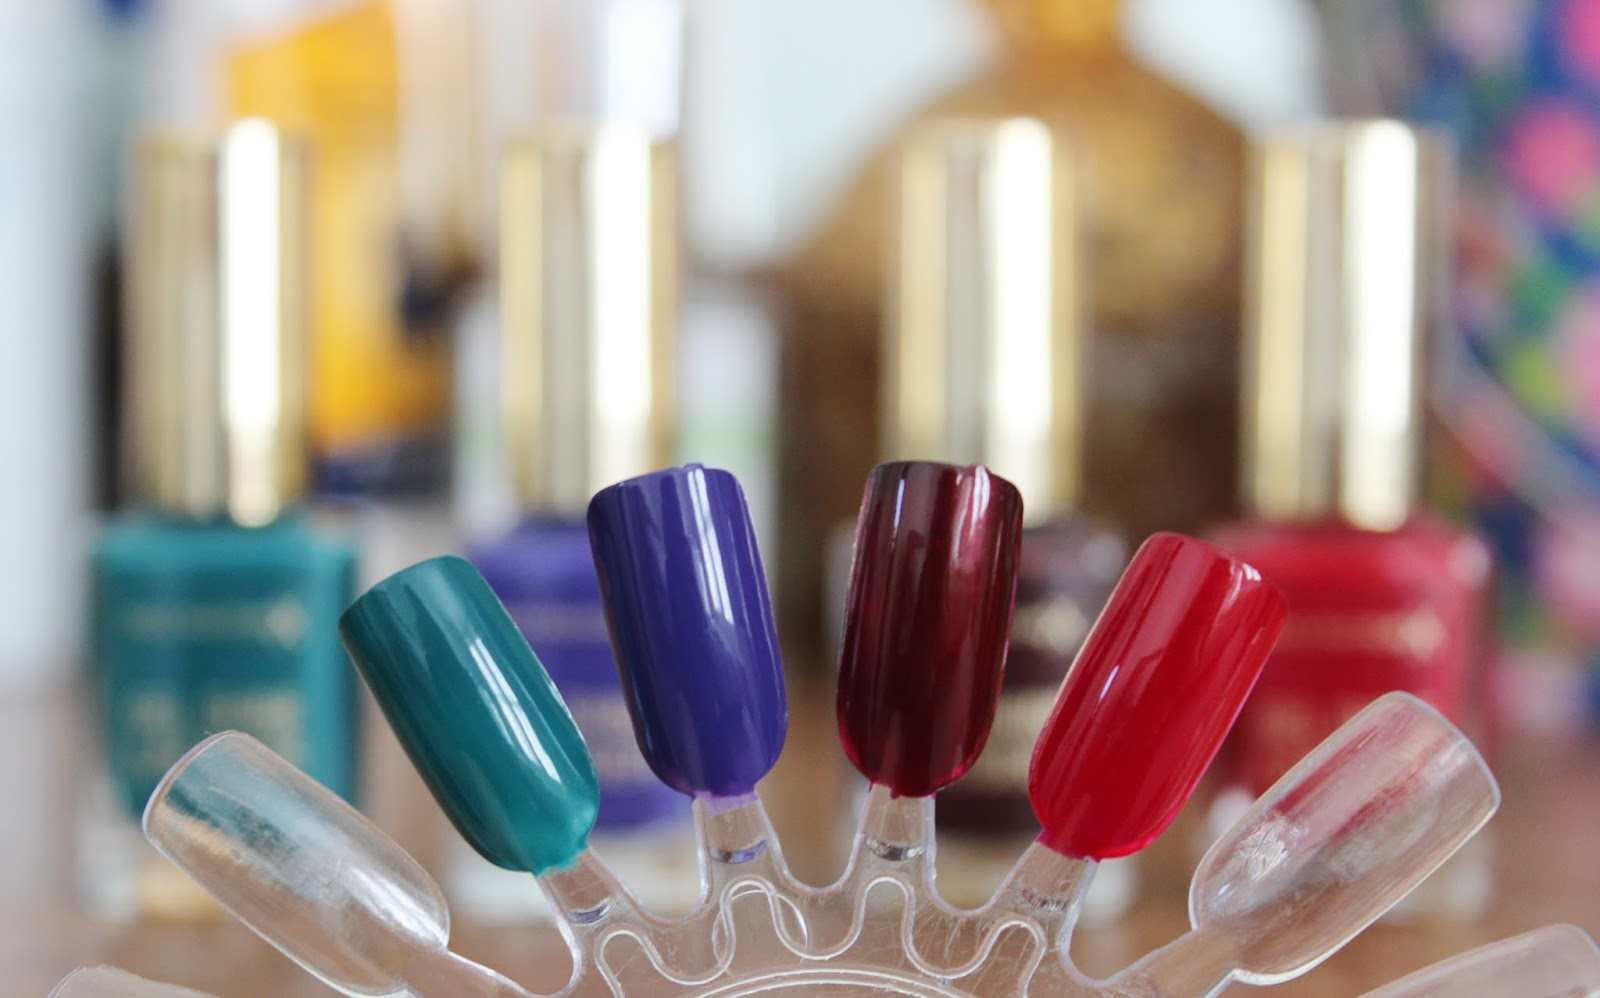 Max Factor Gel Shine lacquer nail polish swatches Gleaming Teal, Lacquered Violet, Sheen Merlot, Patent Poppy